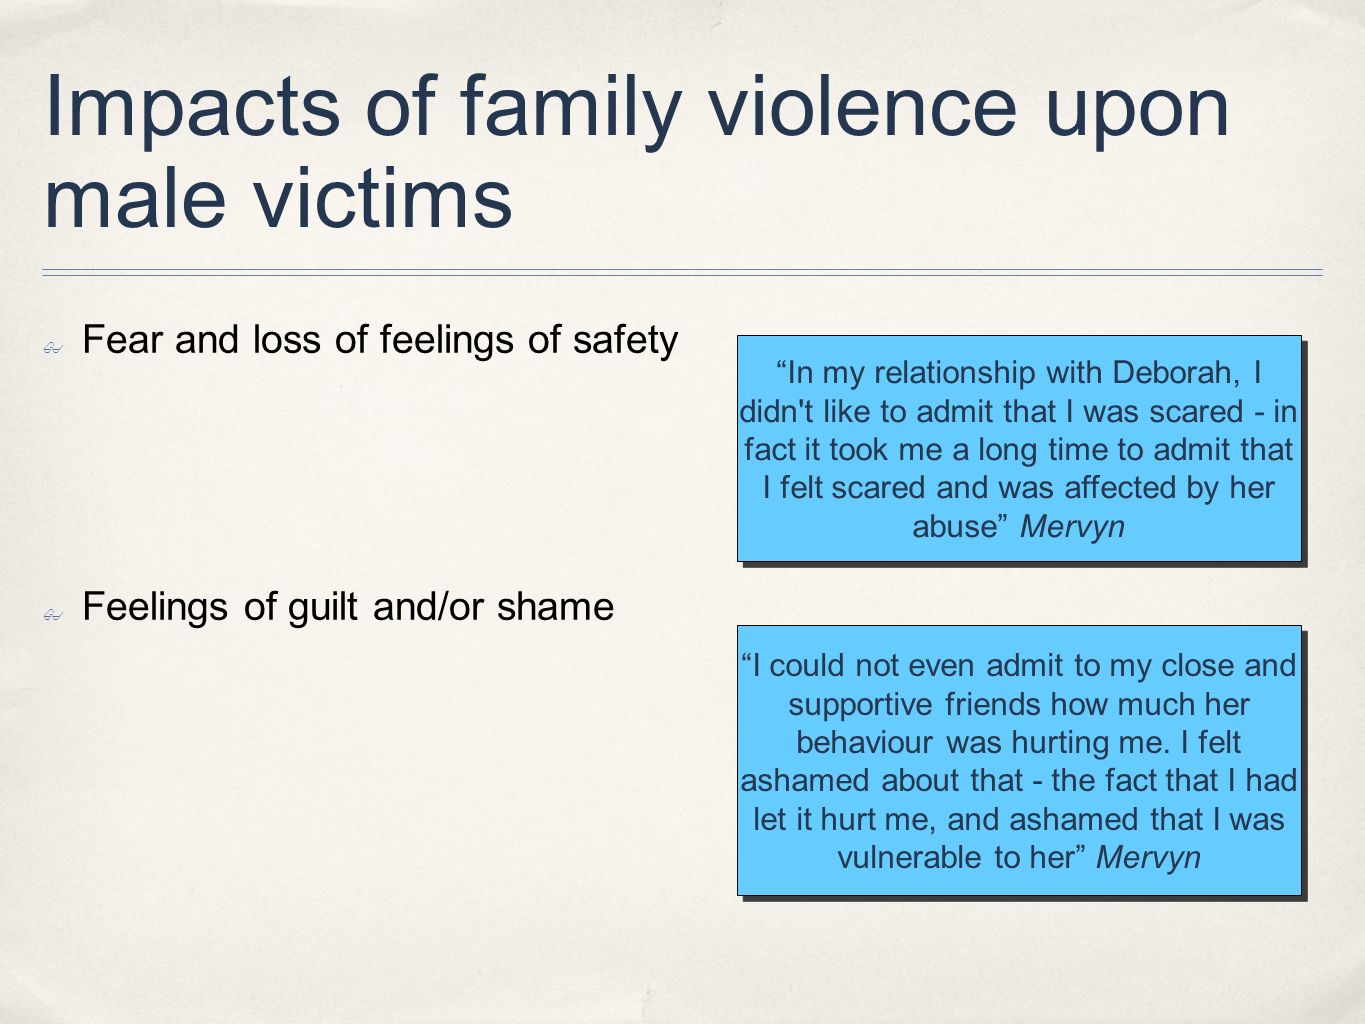 Impacts of family violence upon male victims Fear and loss of feelings of safety Feelings of guilt and/or shame I could not even admit to my close and